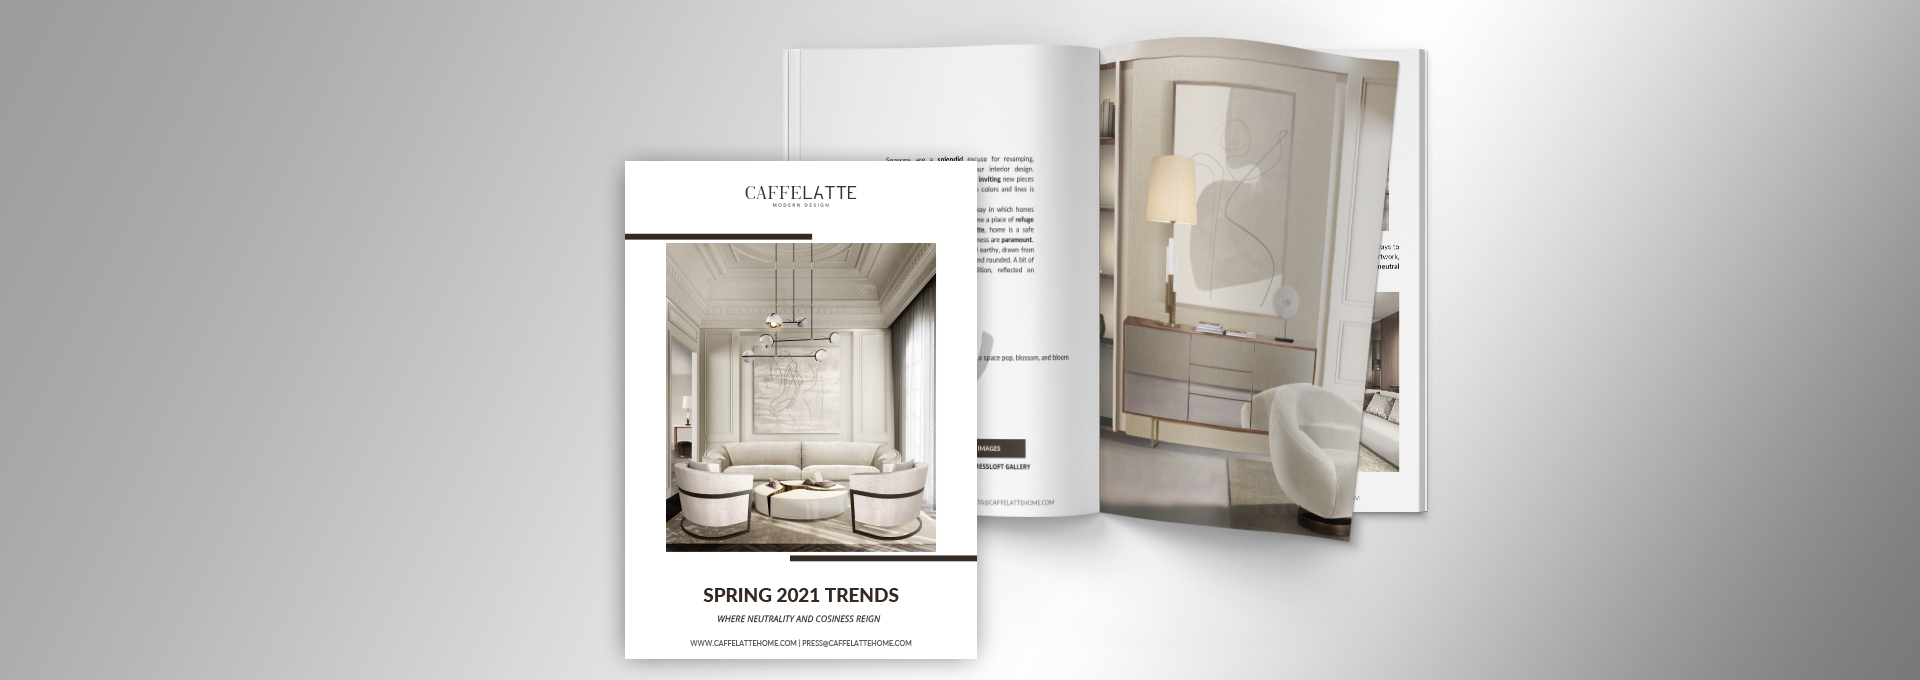 Feature Image DDN Spring Trends Caffe Latte Press Release